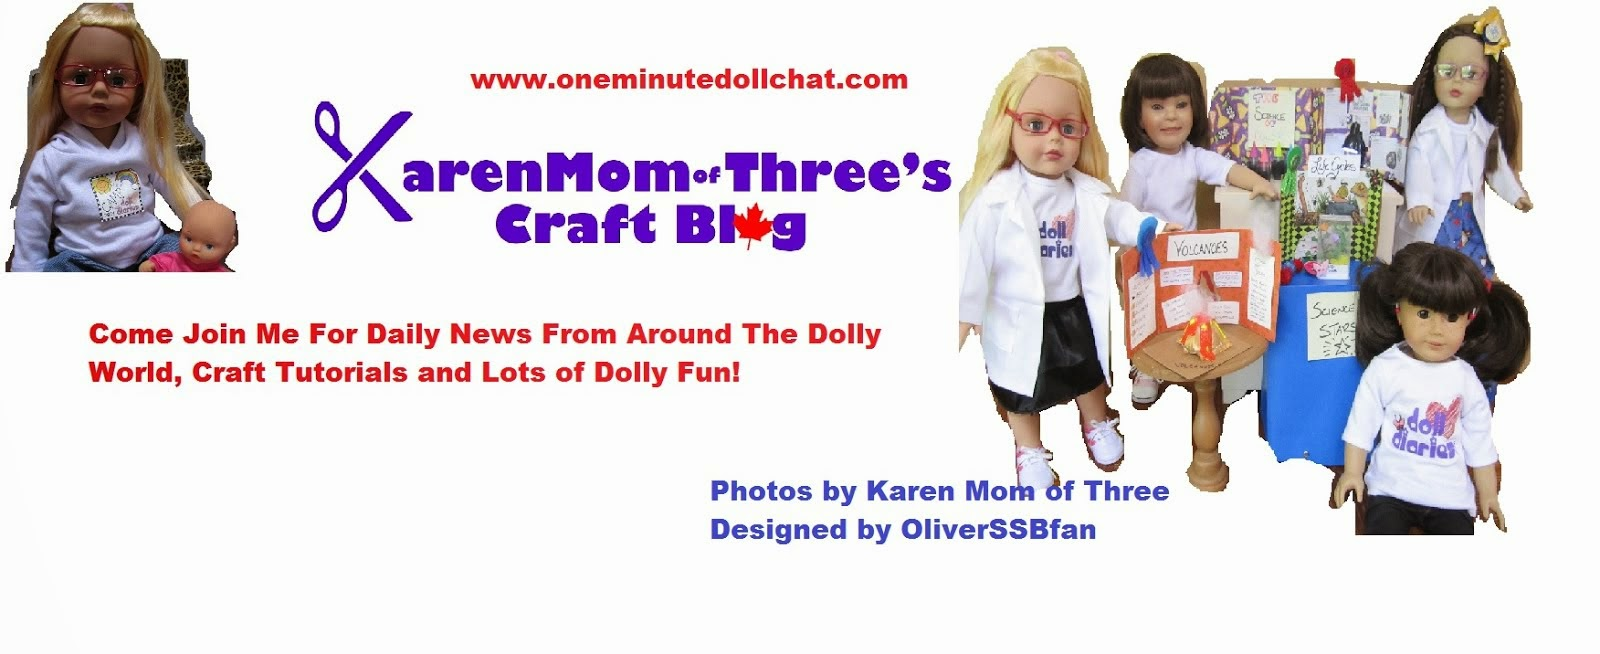 Daily News, Dolly Fun & More